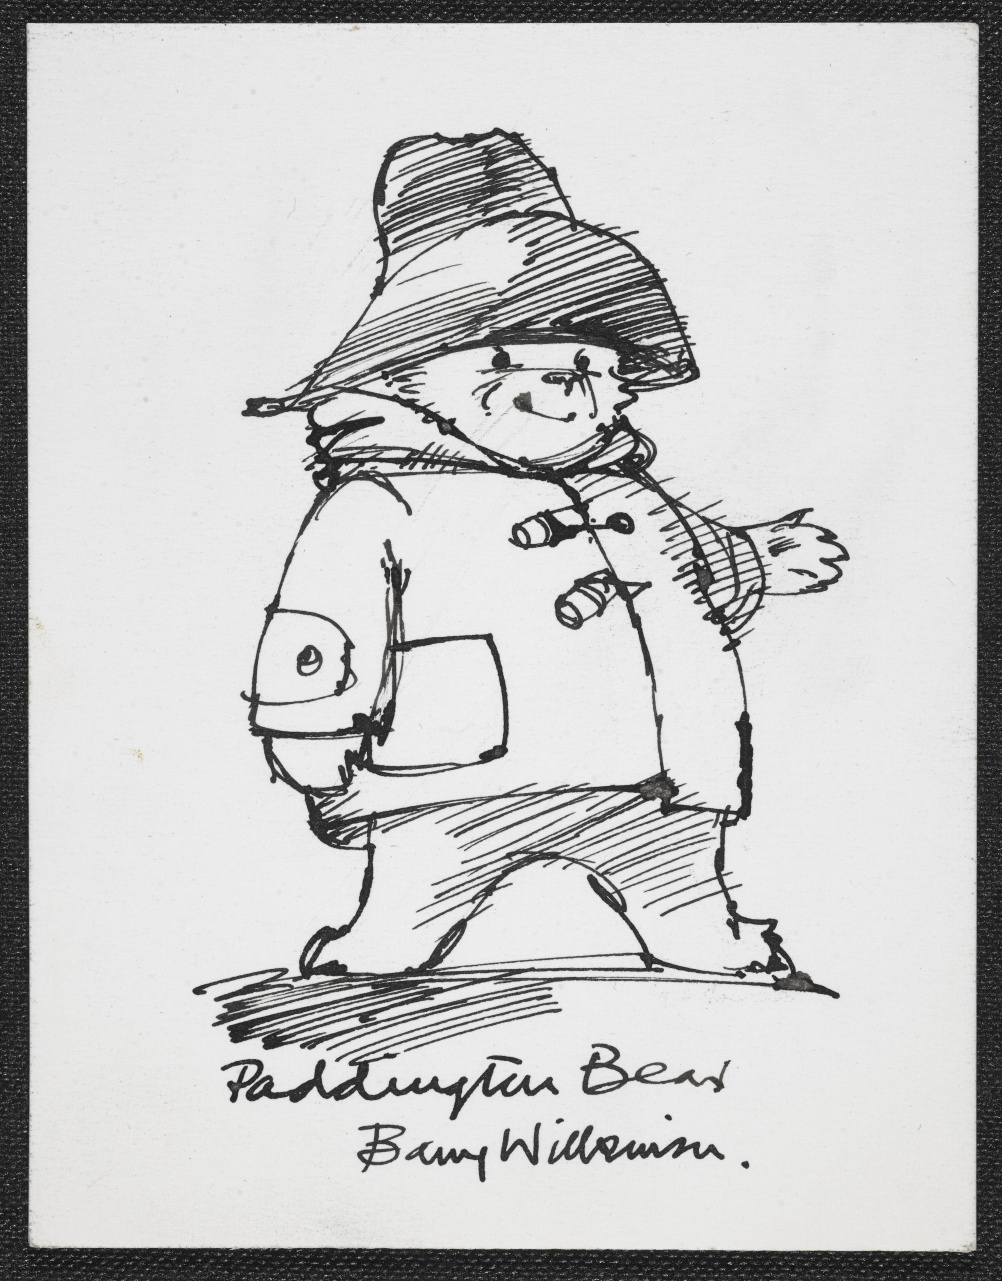 Sketch of Michael Bond's Paddington Bear by Barry Wilkinson